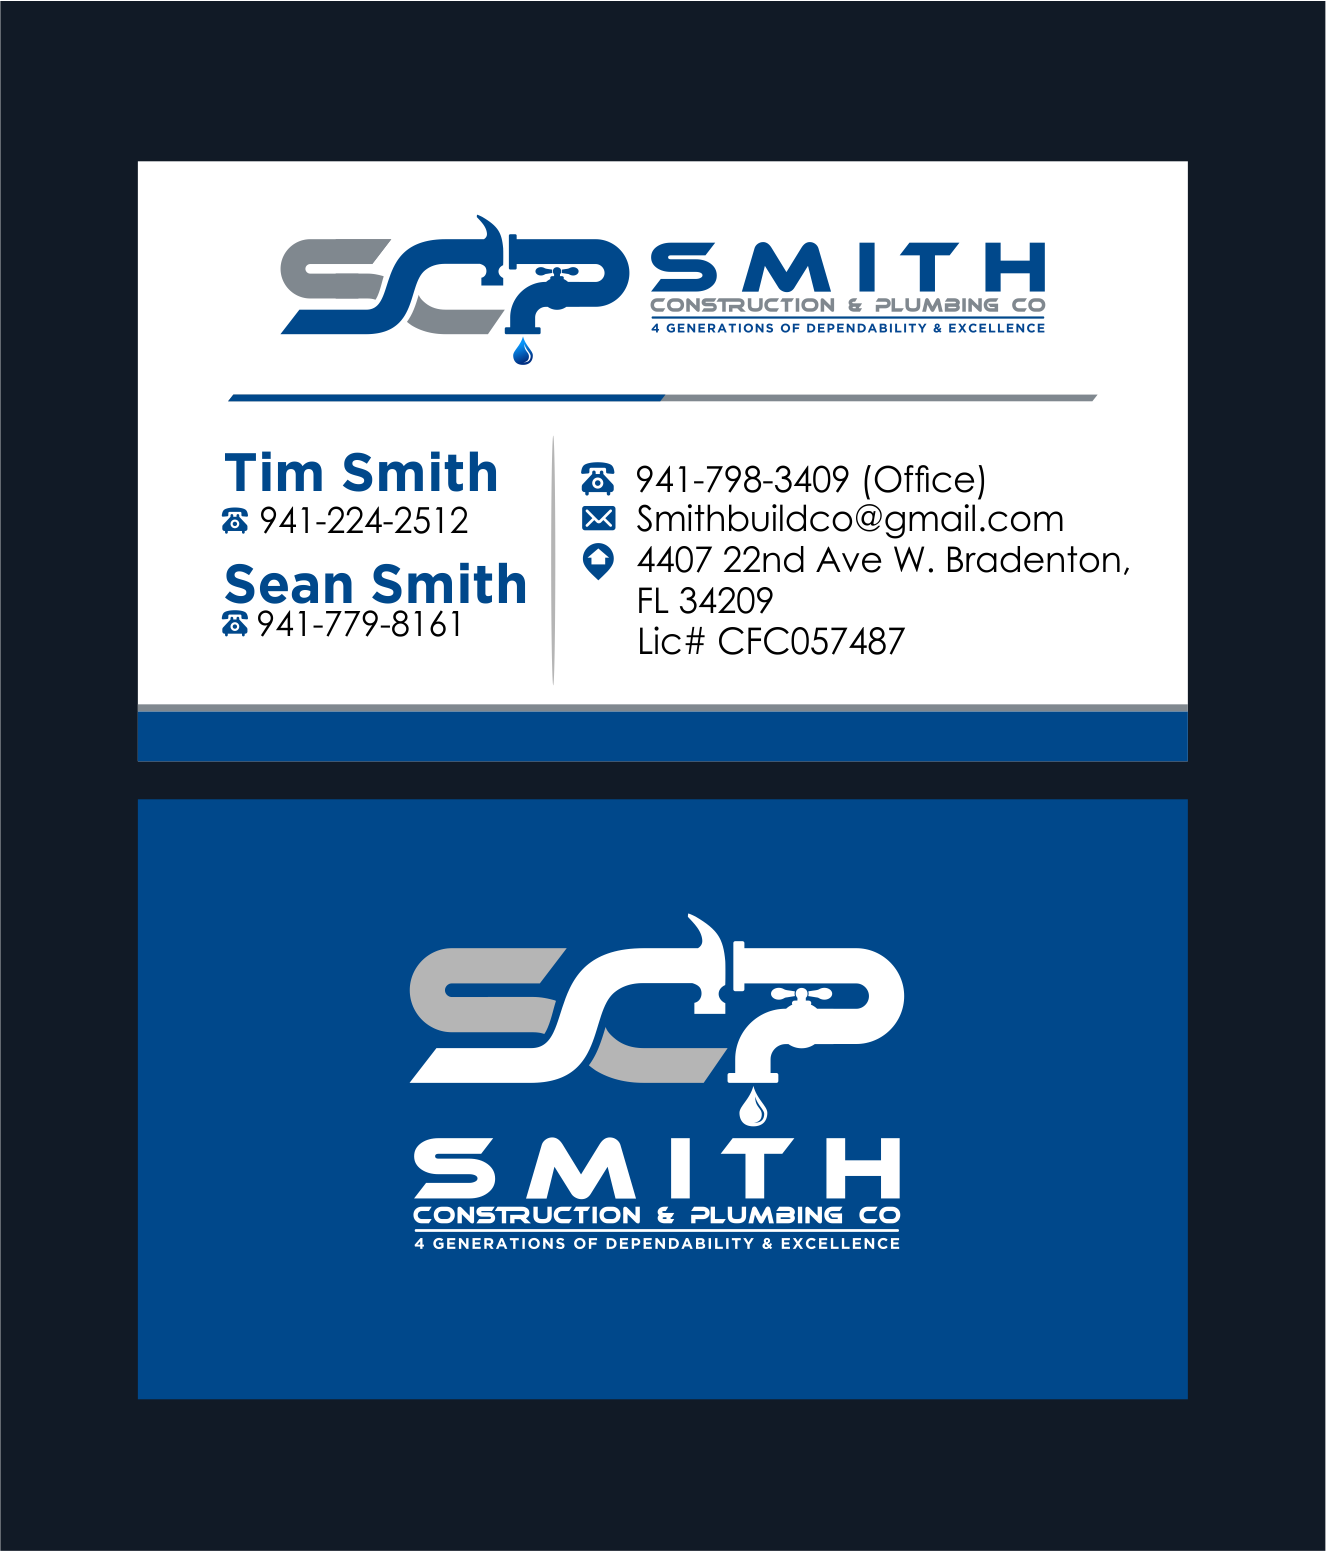 A simple yet distinct logo for a 5th generation construction & plumbing company